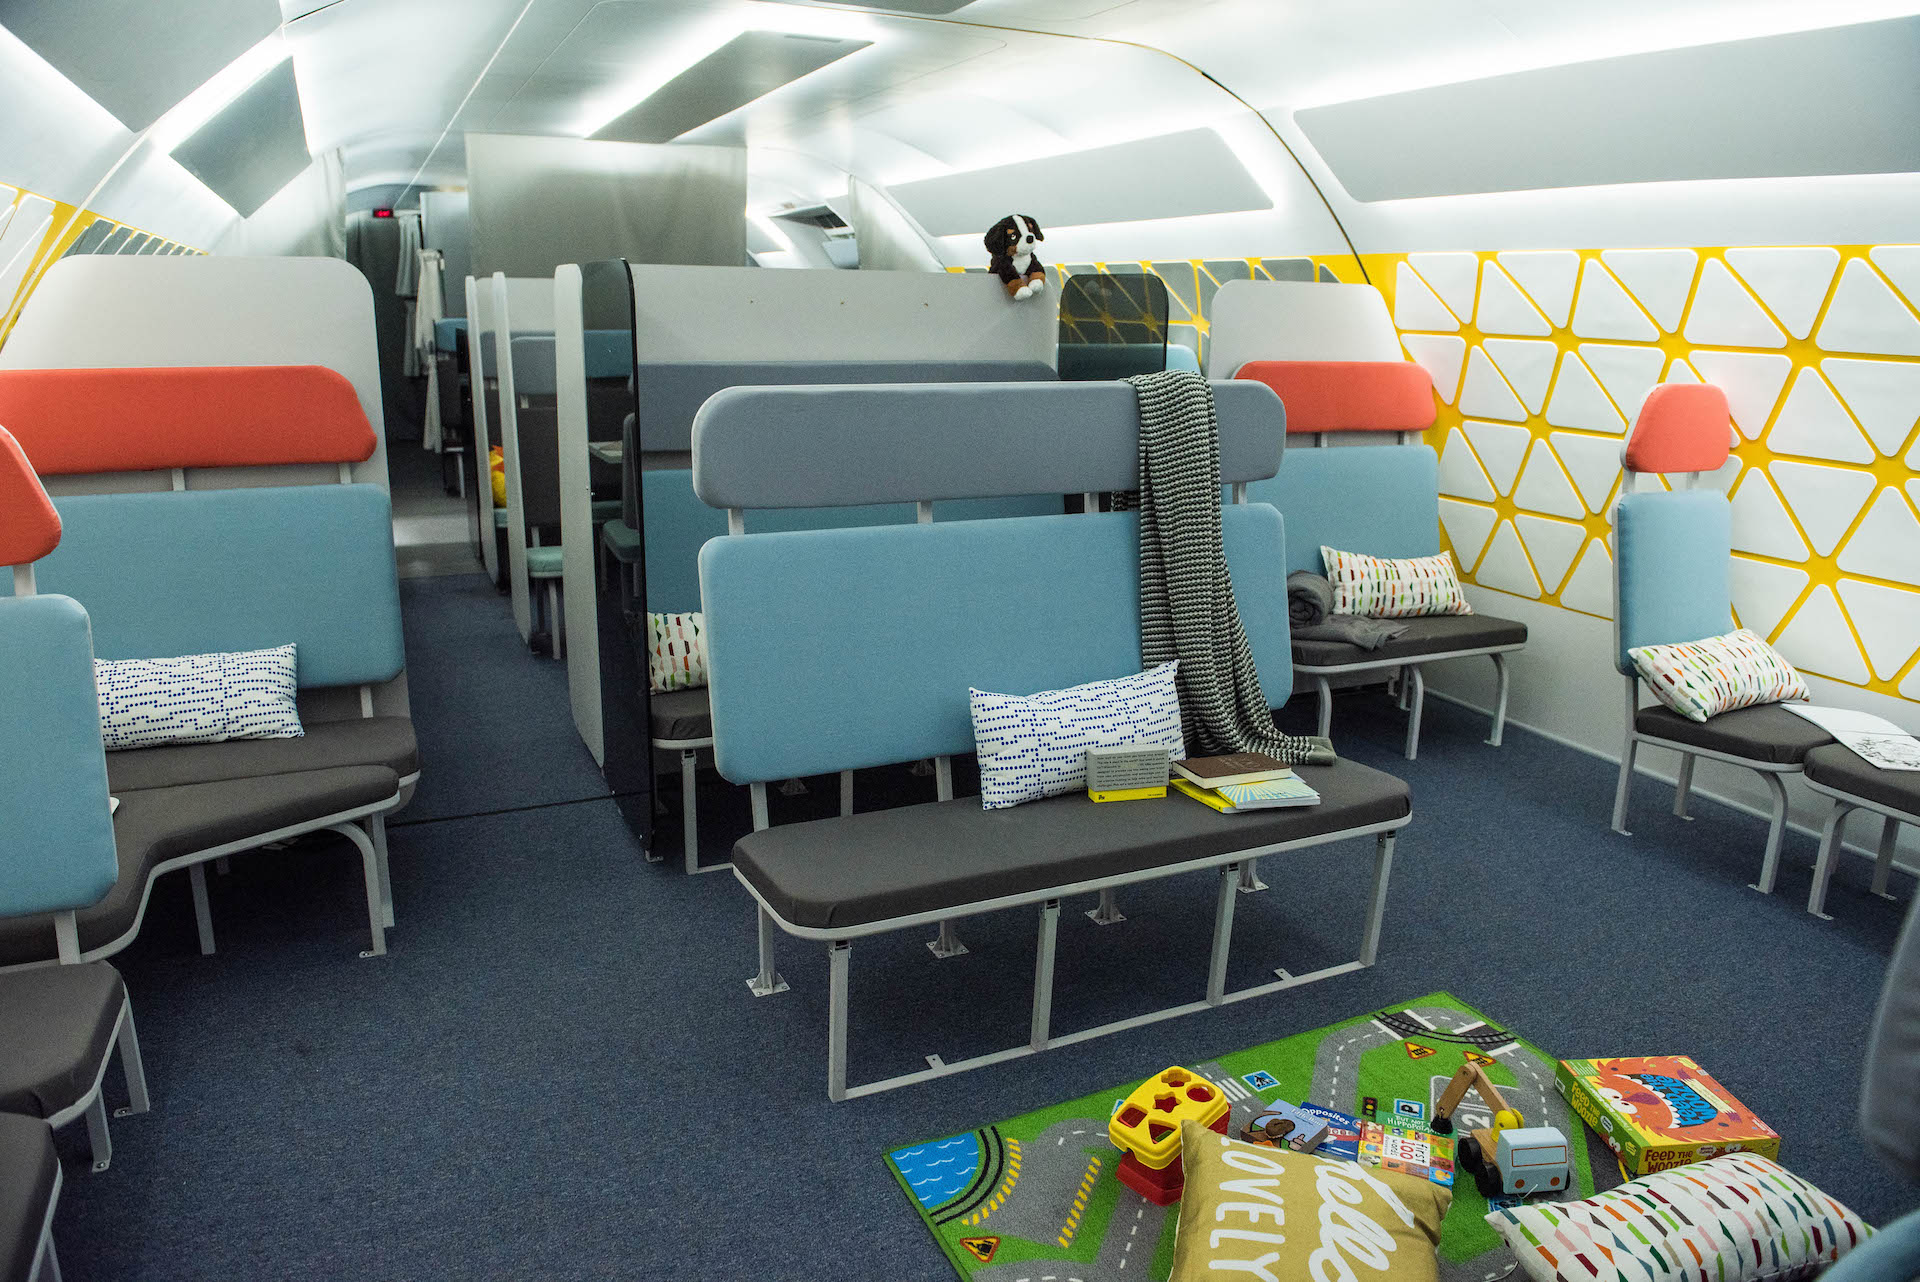 Inside one of the modules of the life size mockup. This is the family cabin, which has taken design cues from train design.